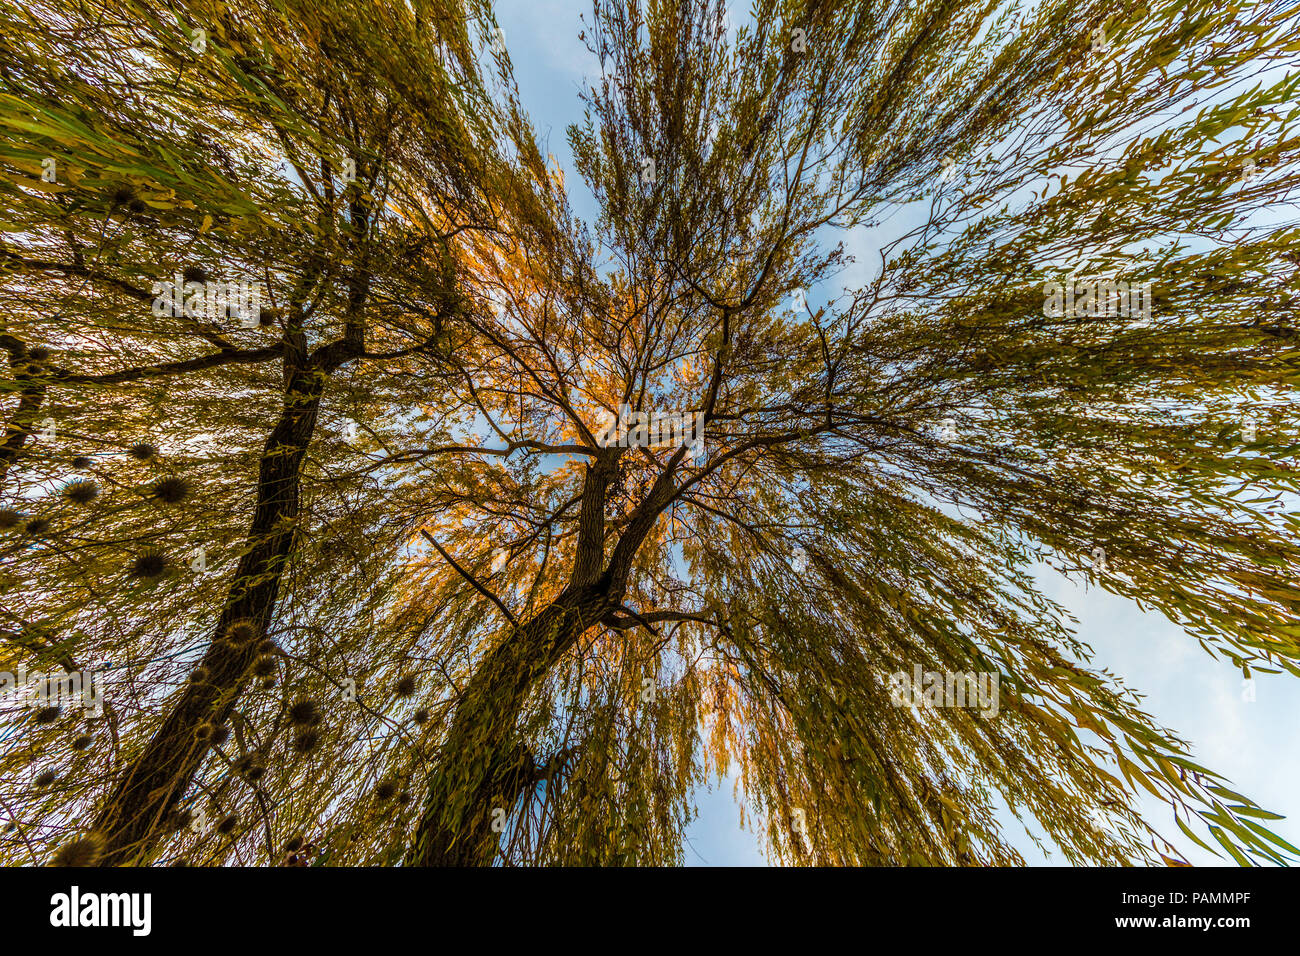 weeping willow, wide angle view from below - Stock Image